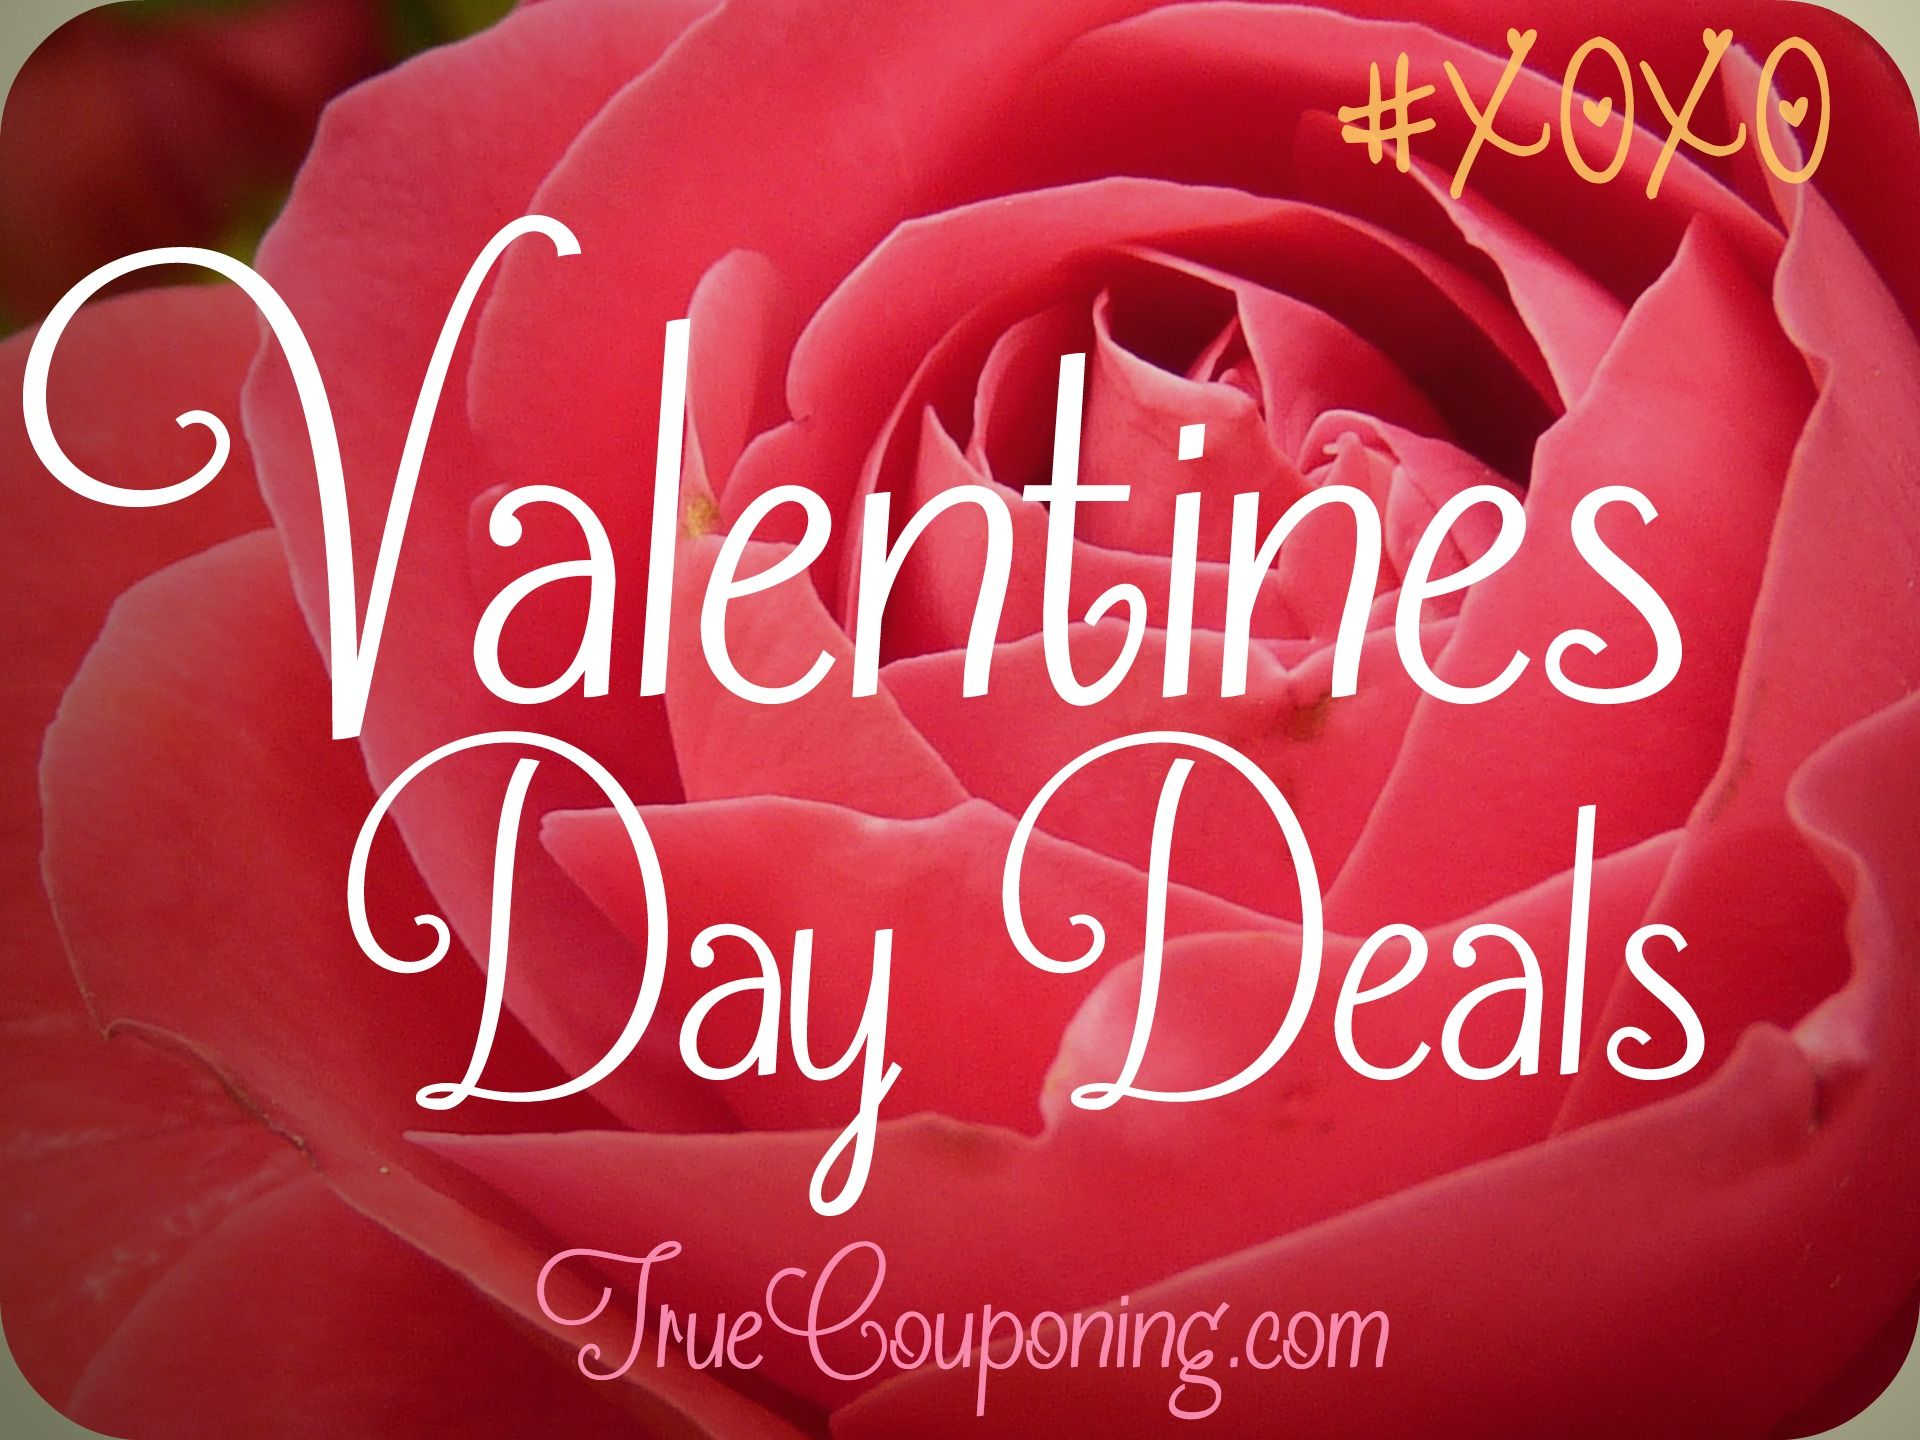 WooHoo! For Fun Valentine's FREEbies and Deals!